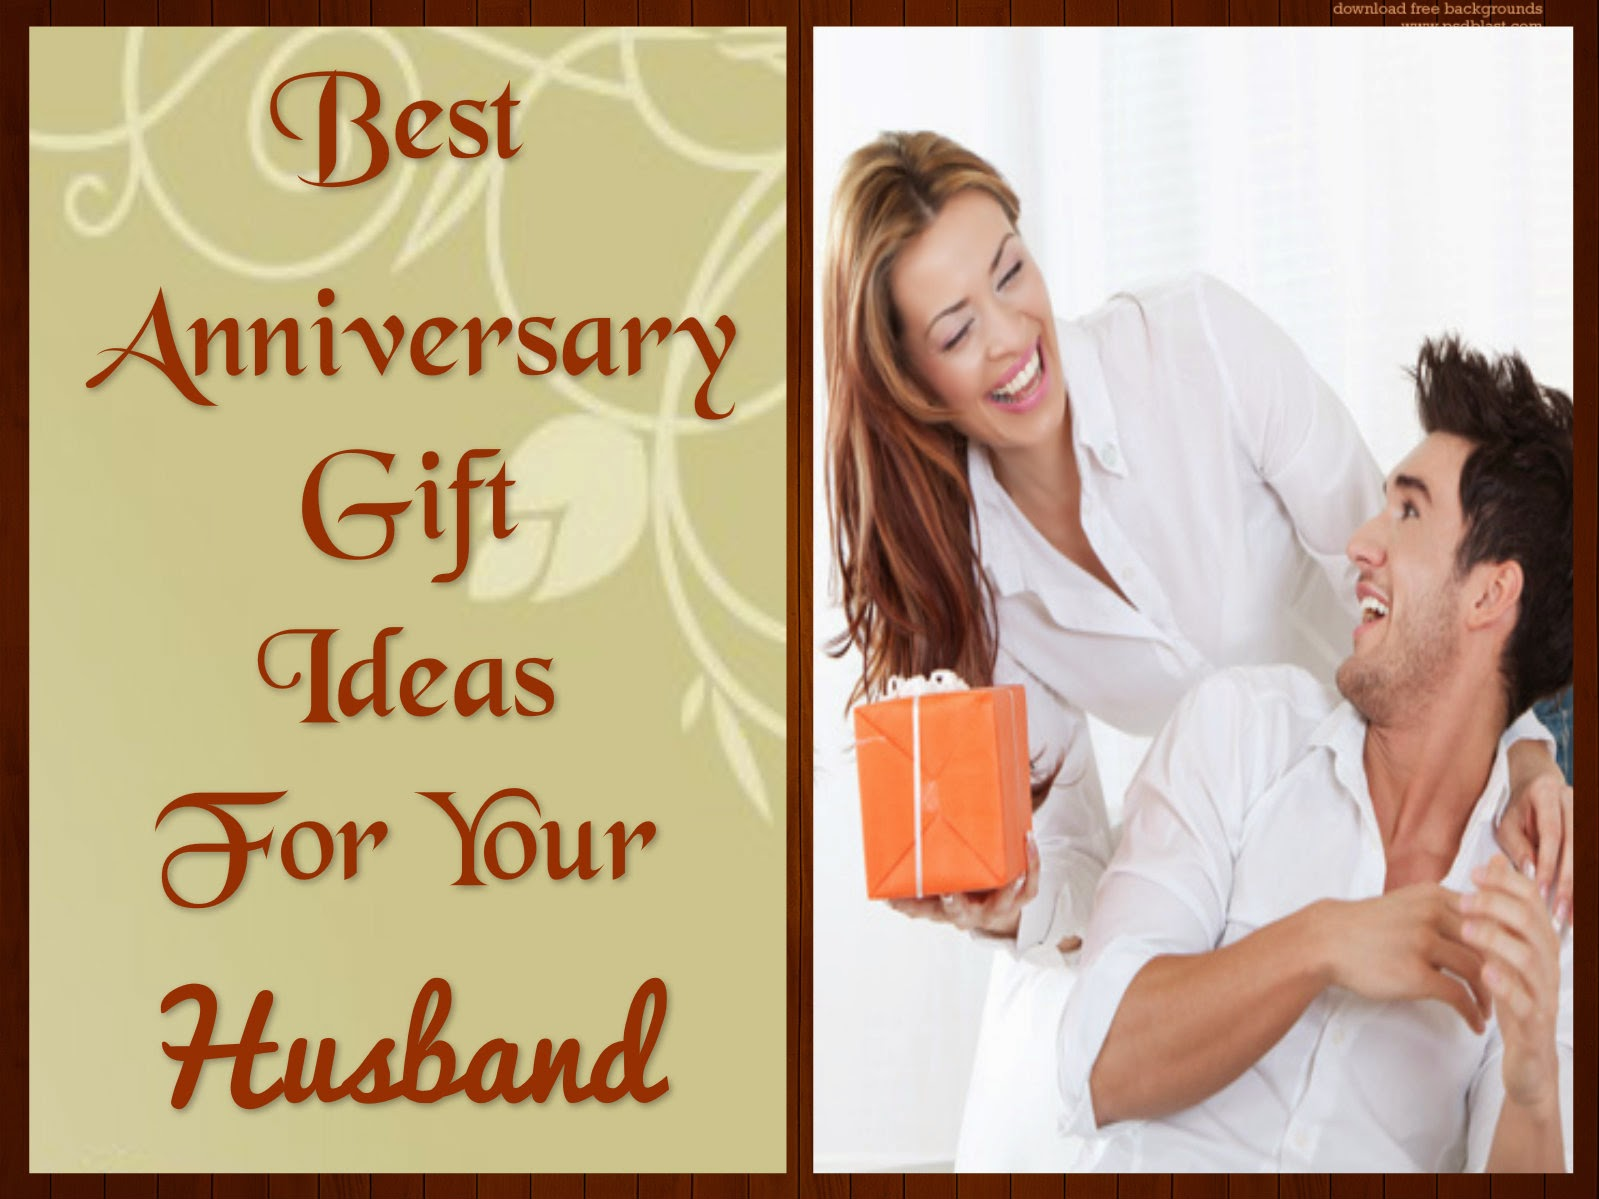 Wedding anniversary gifts best anniversary gift ideas for your